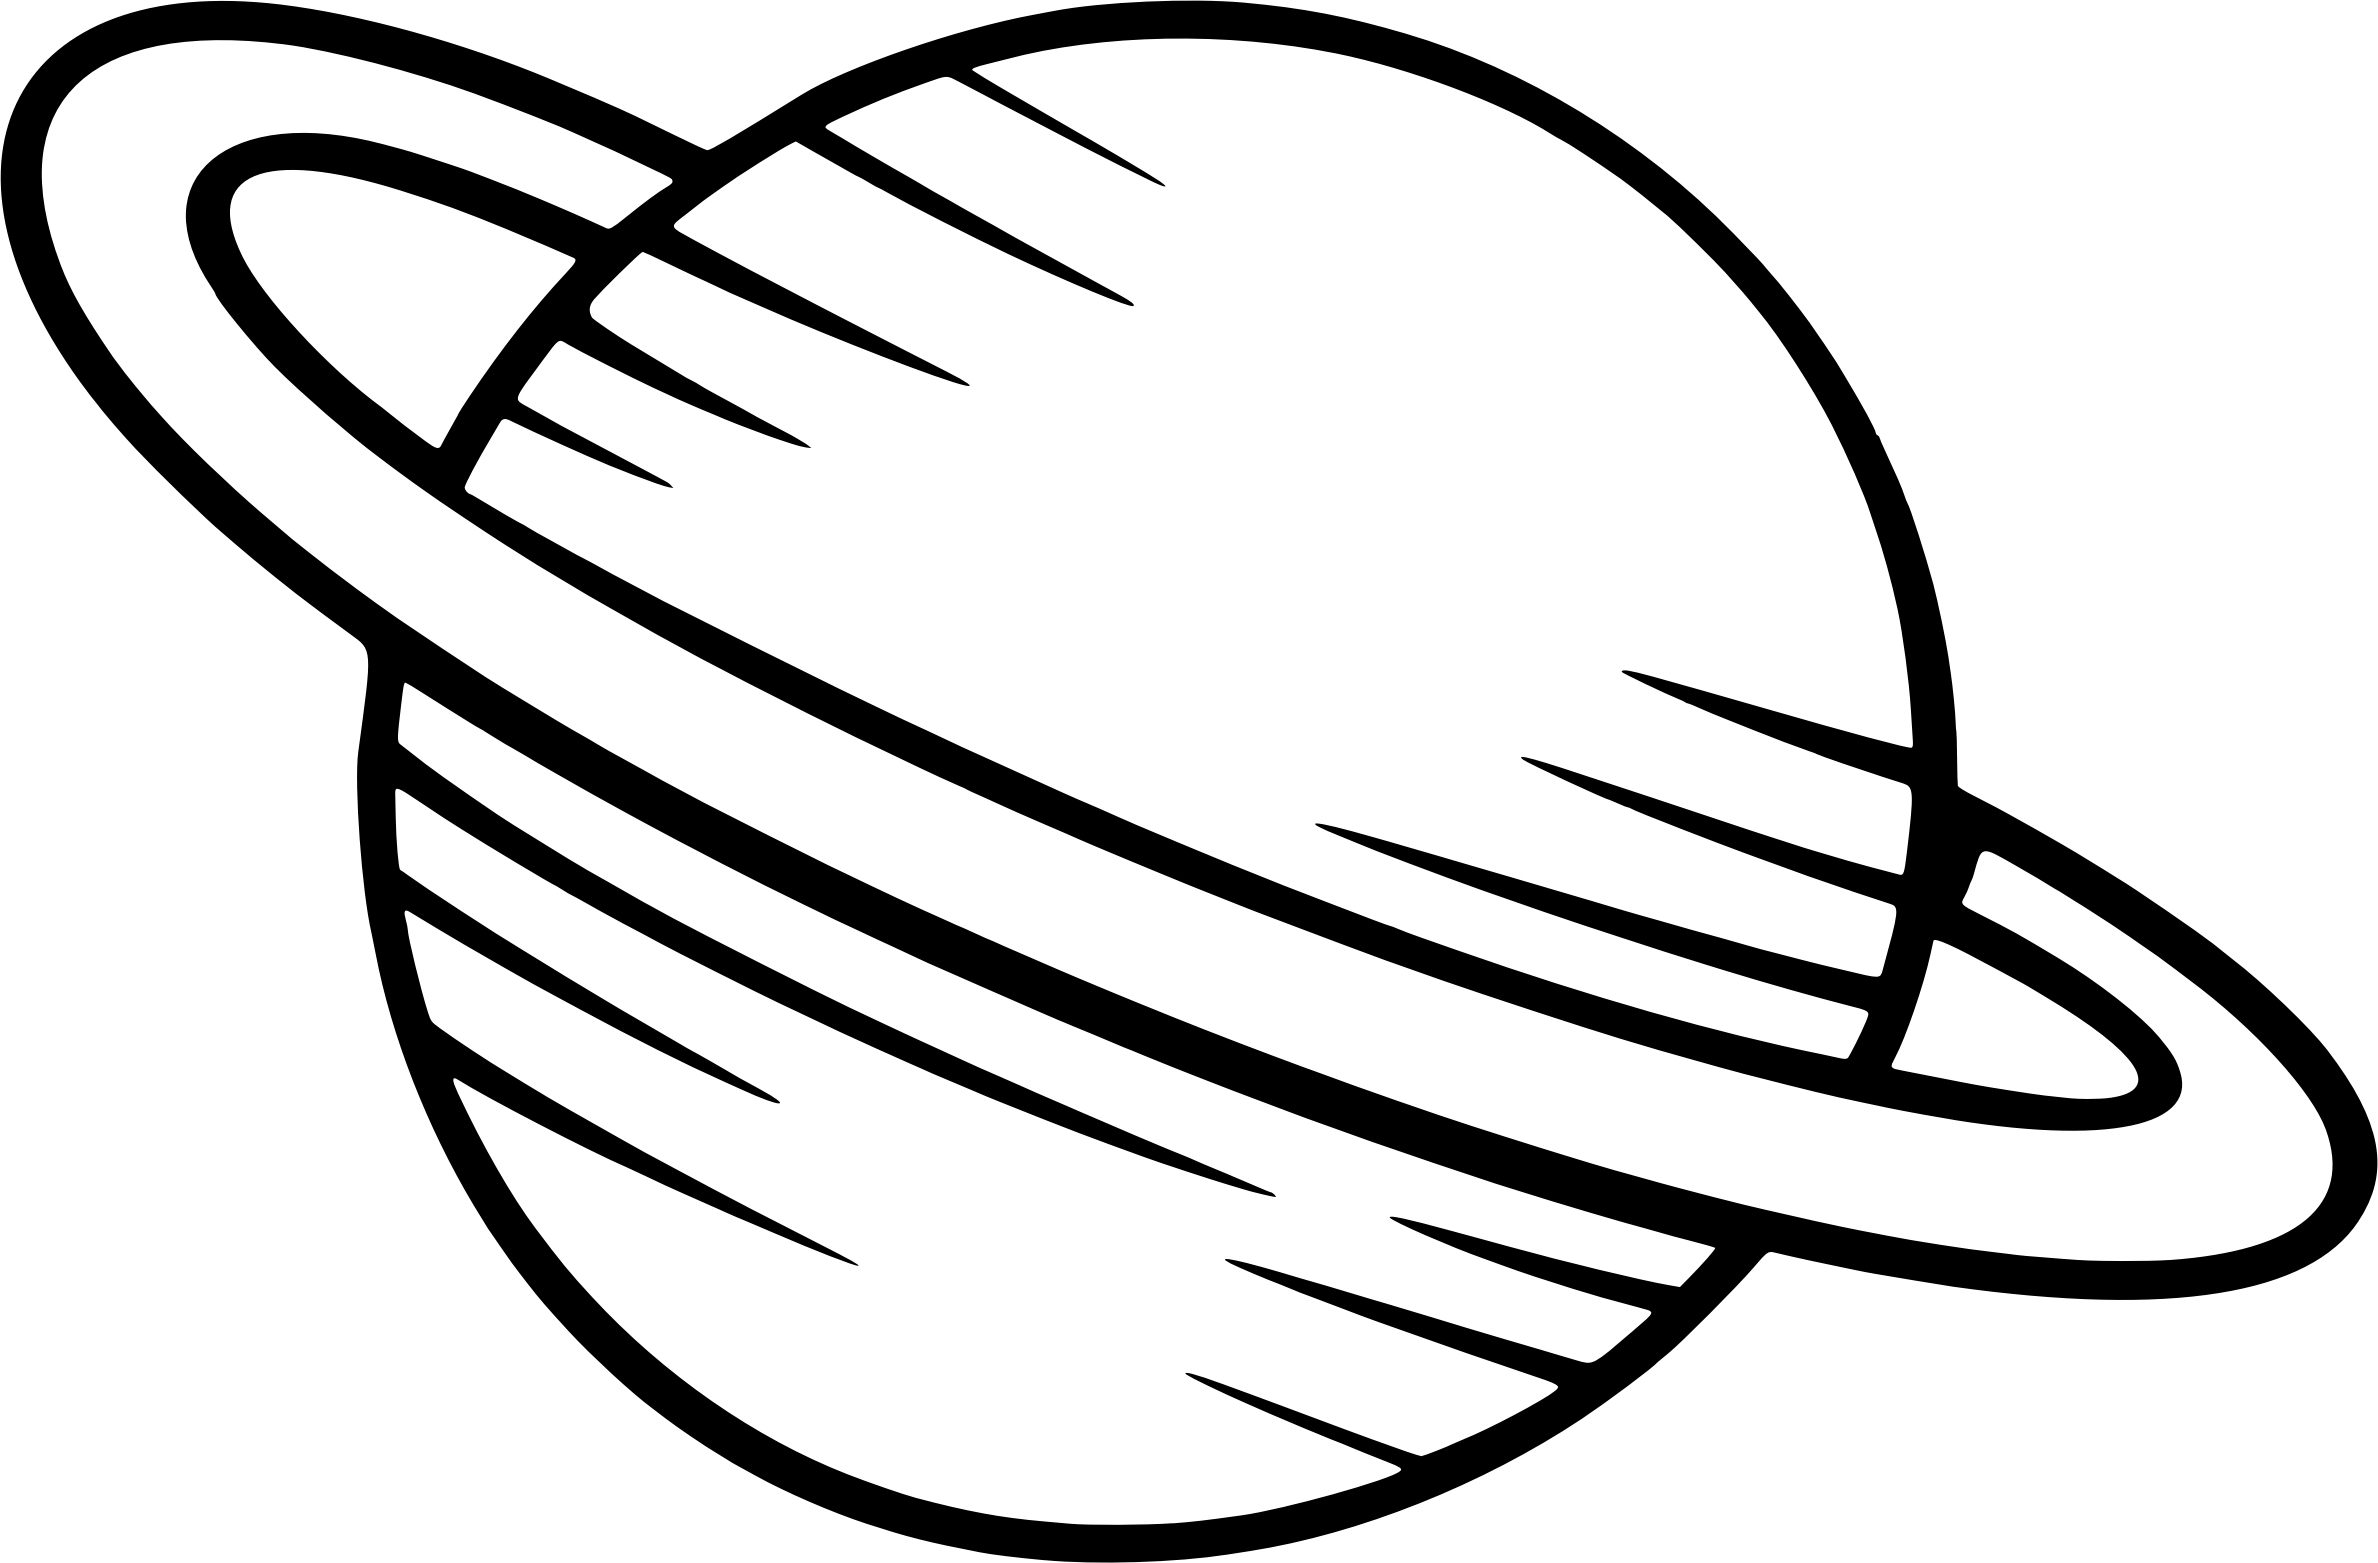 Planets Clipart Simple Planets Simple Transparent Free